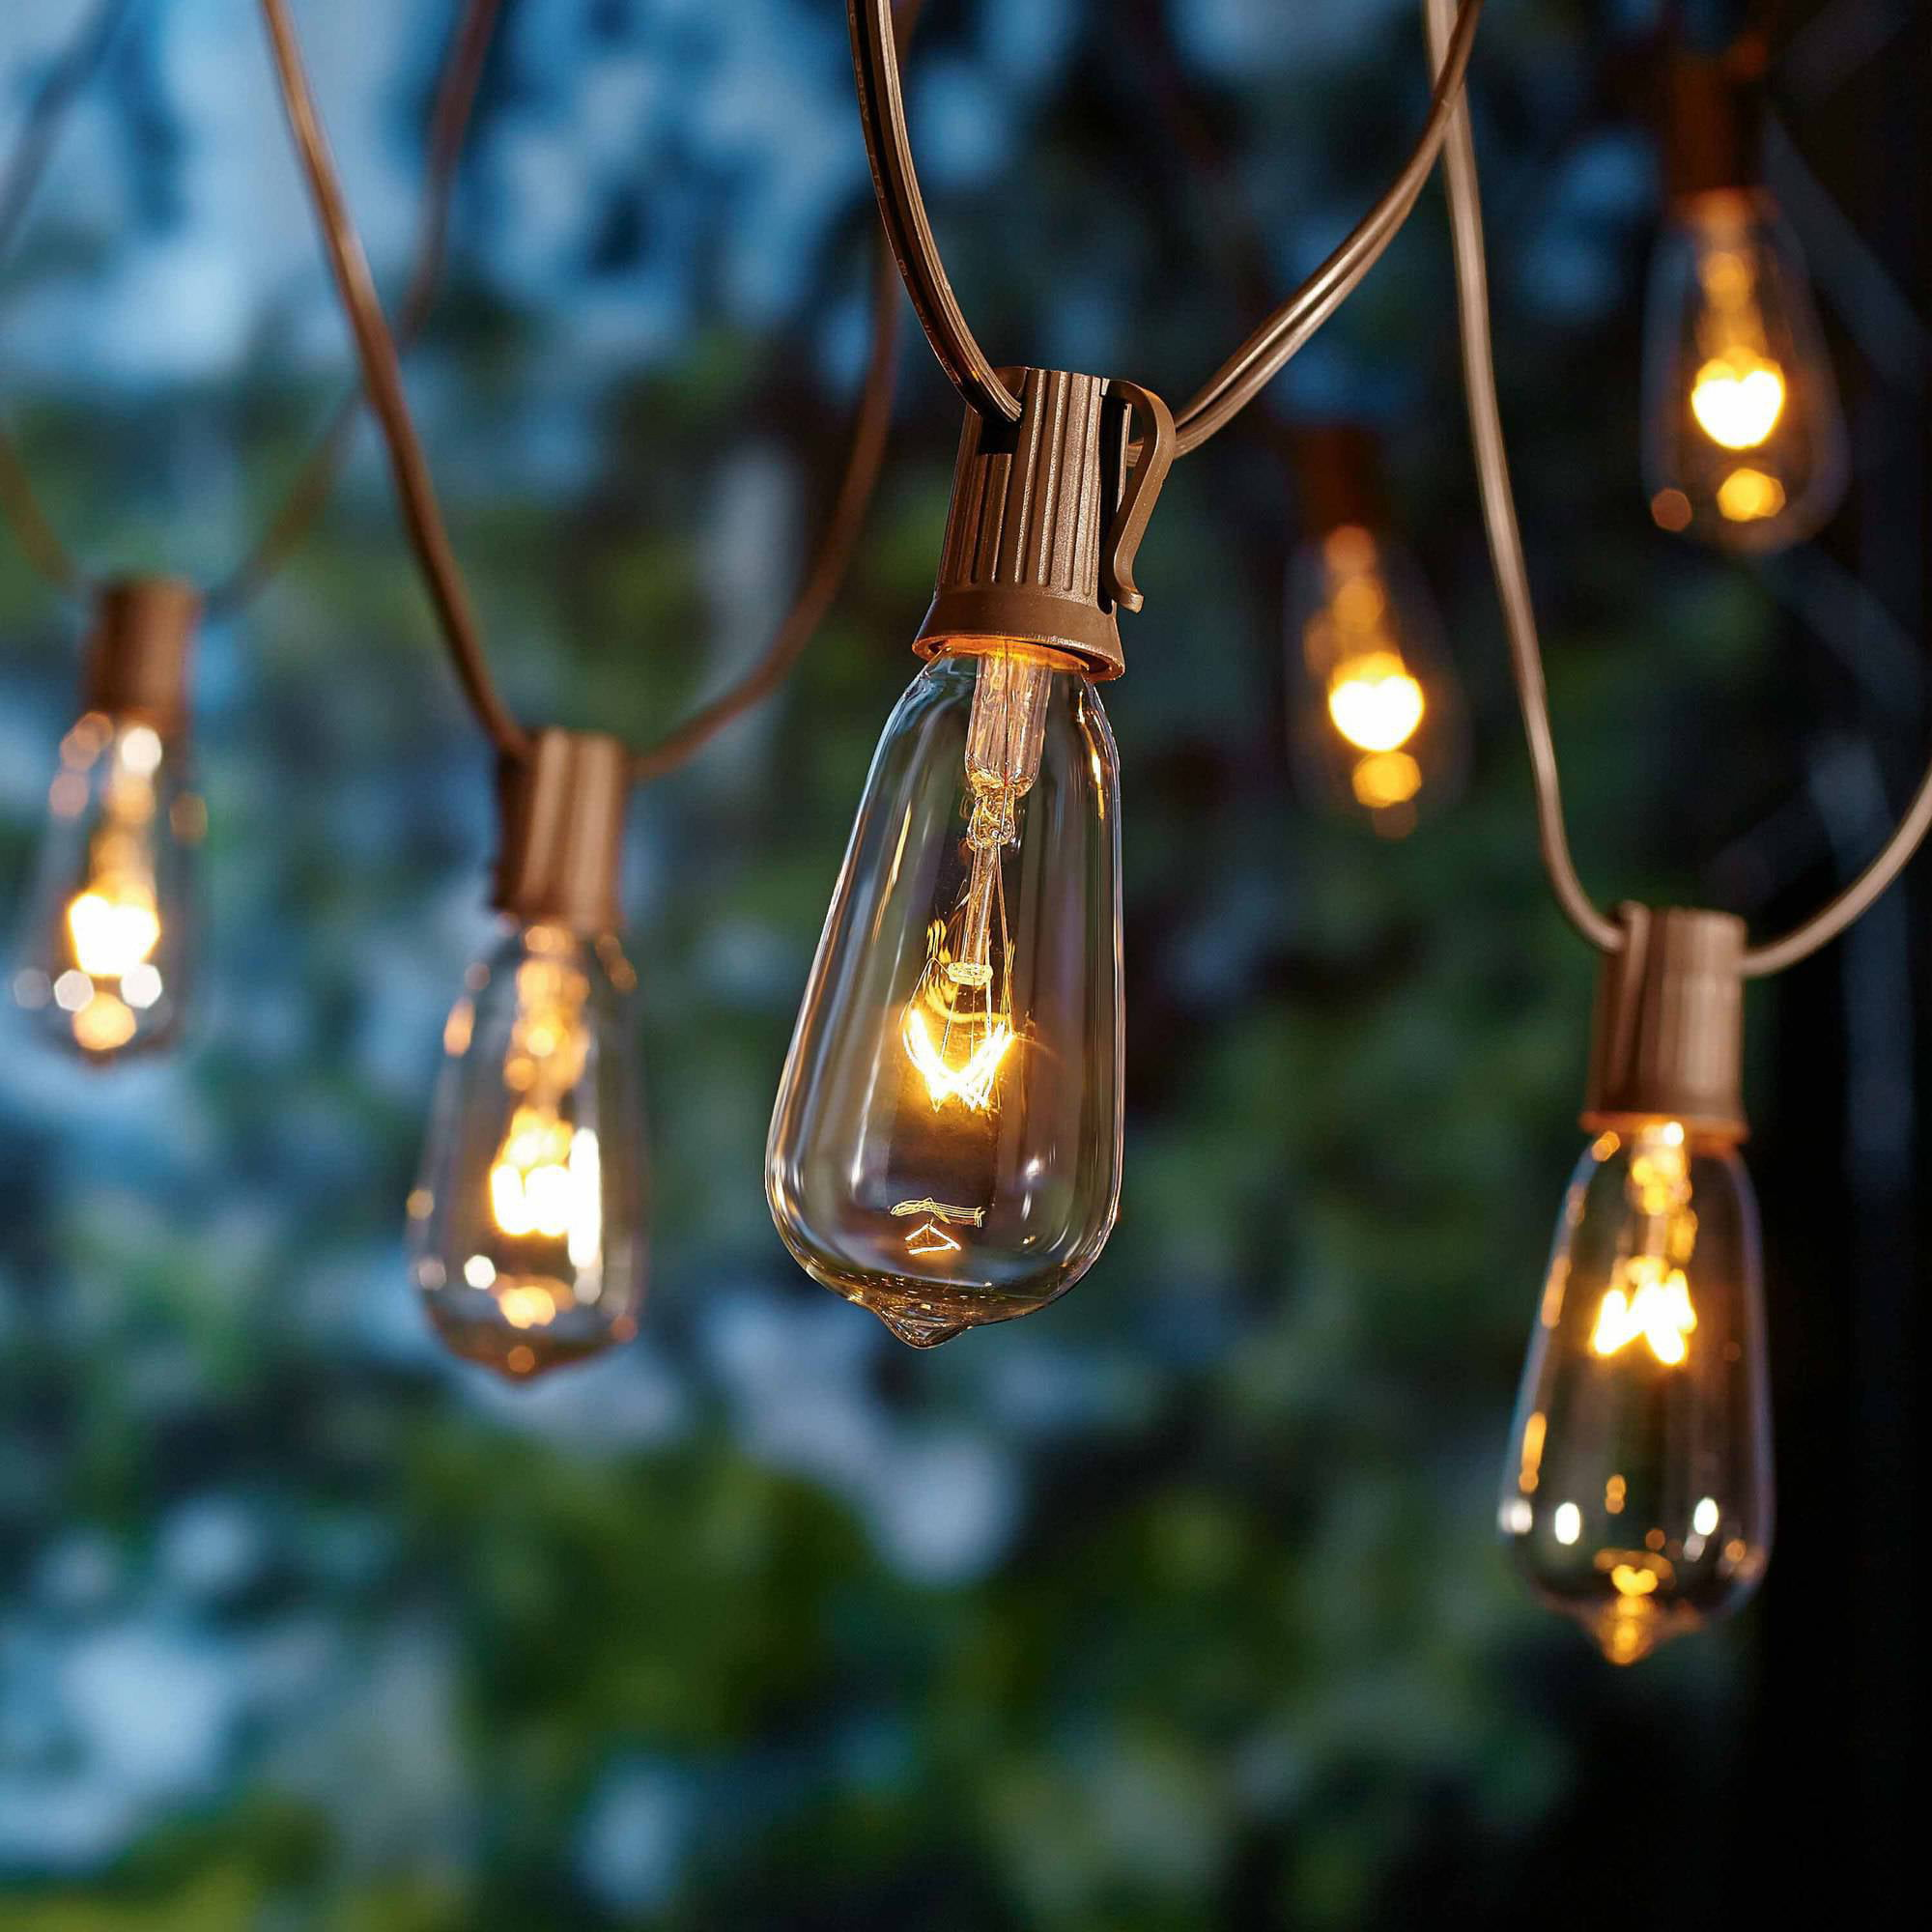 Awesome Better Homes And Gardens Glass Edison String Lights, 10 Count   Walmart.com